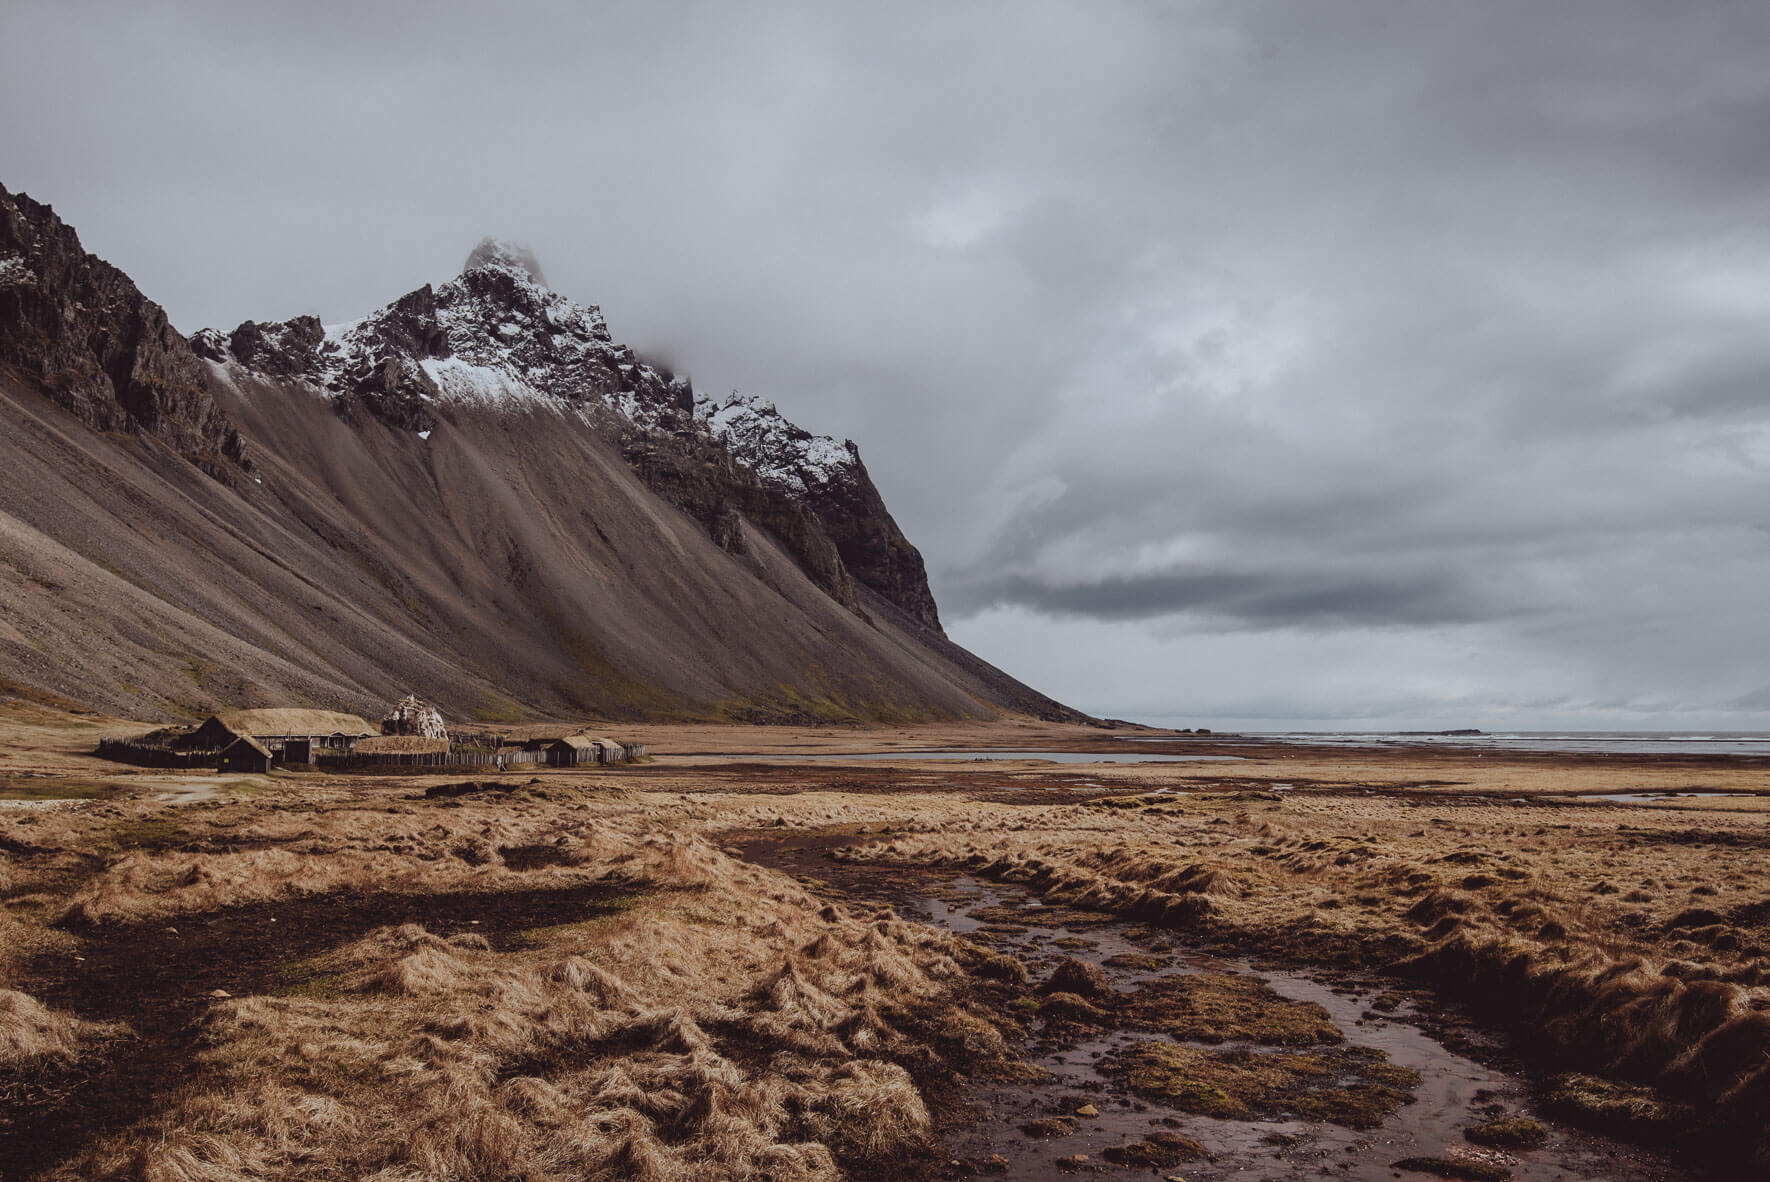 Viking village film set and Vestrahorn mountain near the town Höfn in Iceland